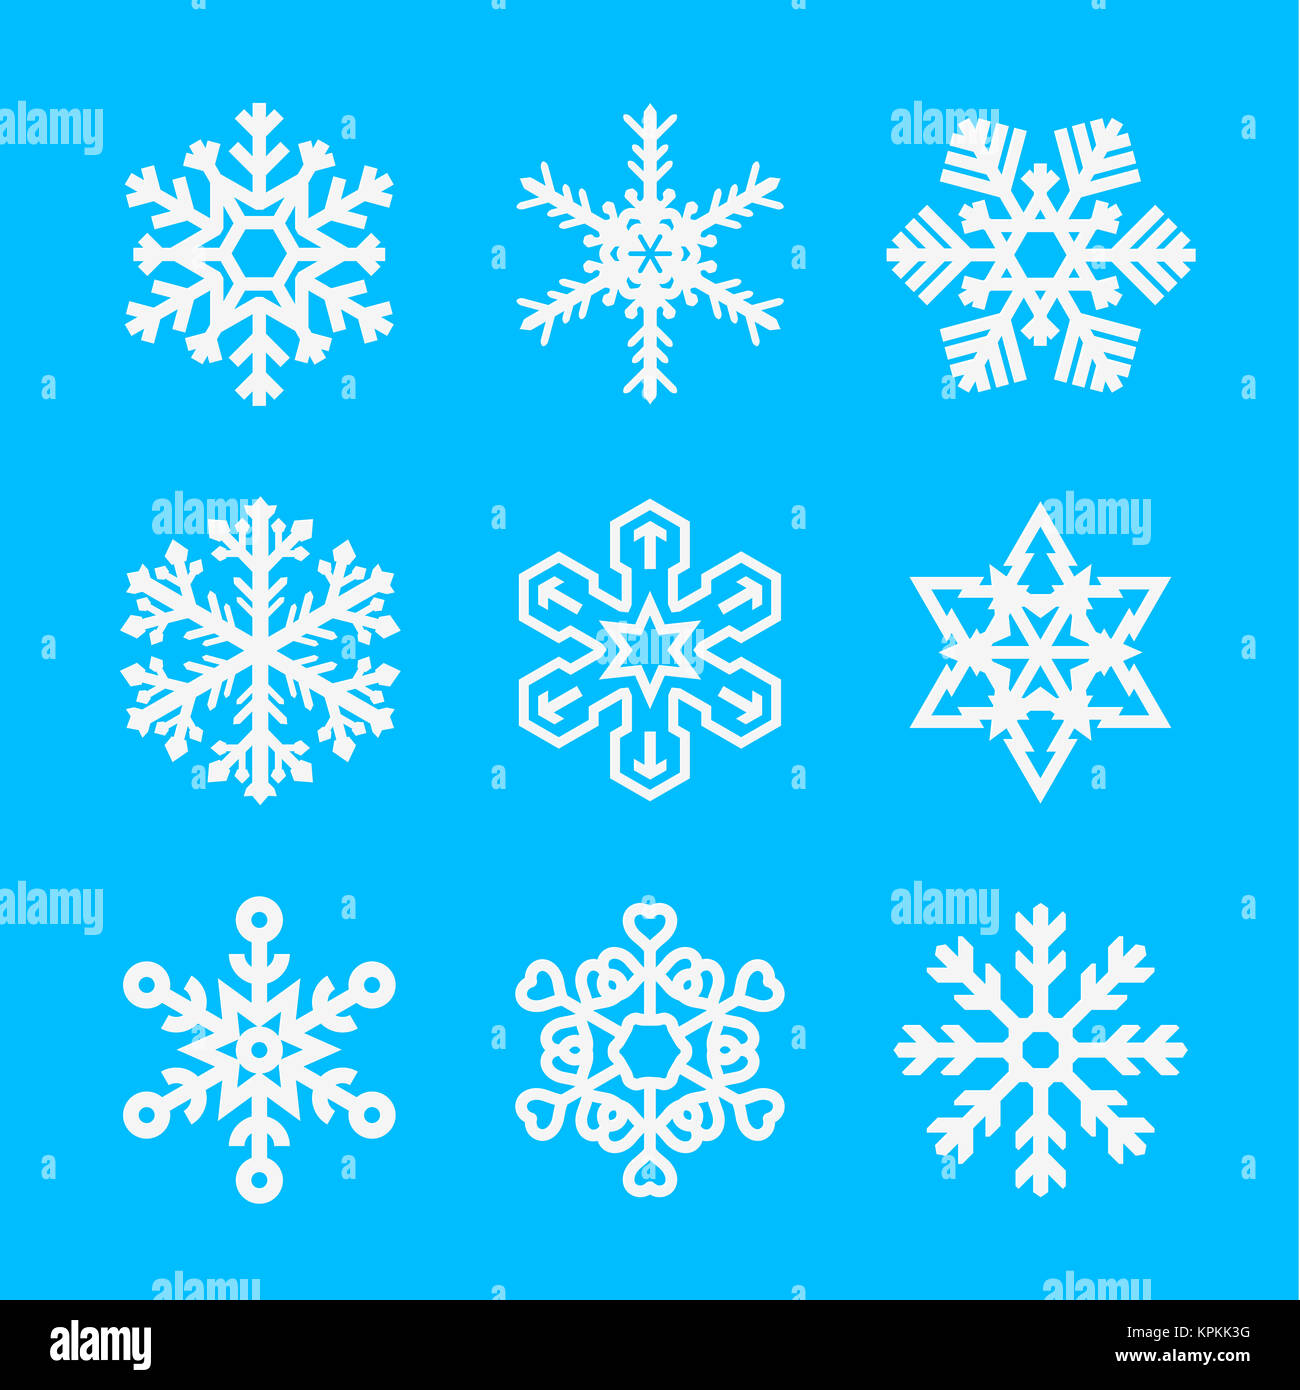 Asterisk symbol stock photos asterisk symbol stock images alamy several different types of snowflakes snowflakes of different shapes on a blue background illustration biocorpaavc Image collections